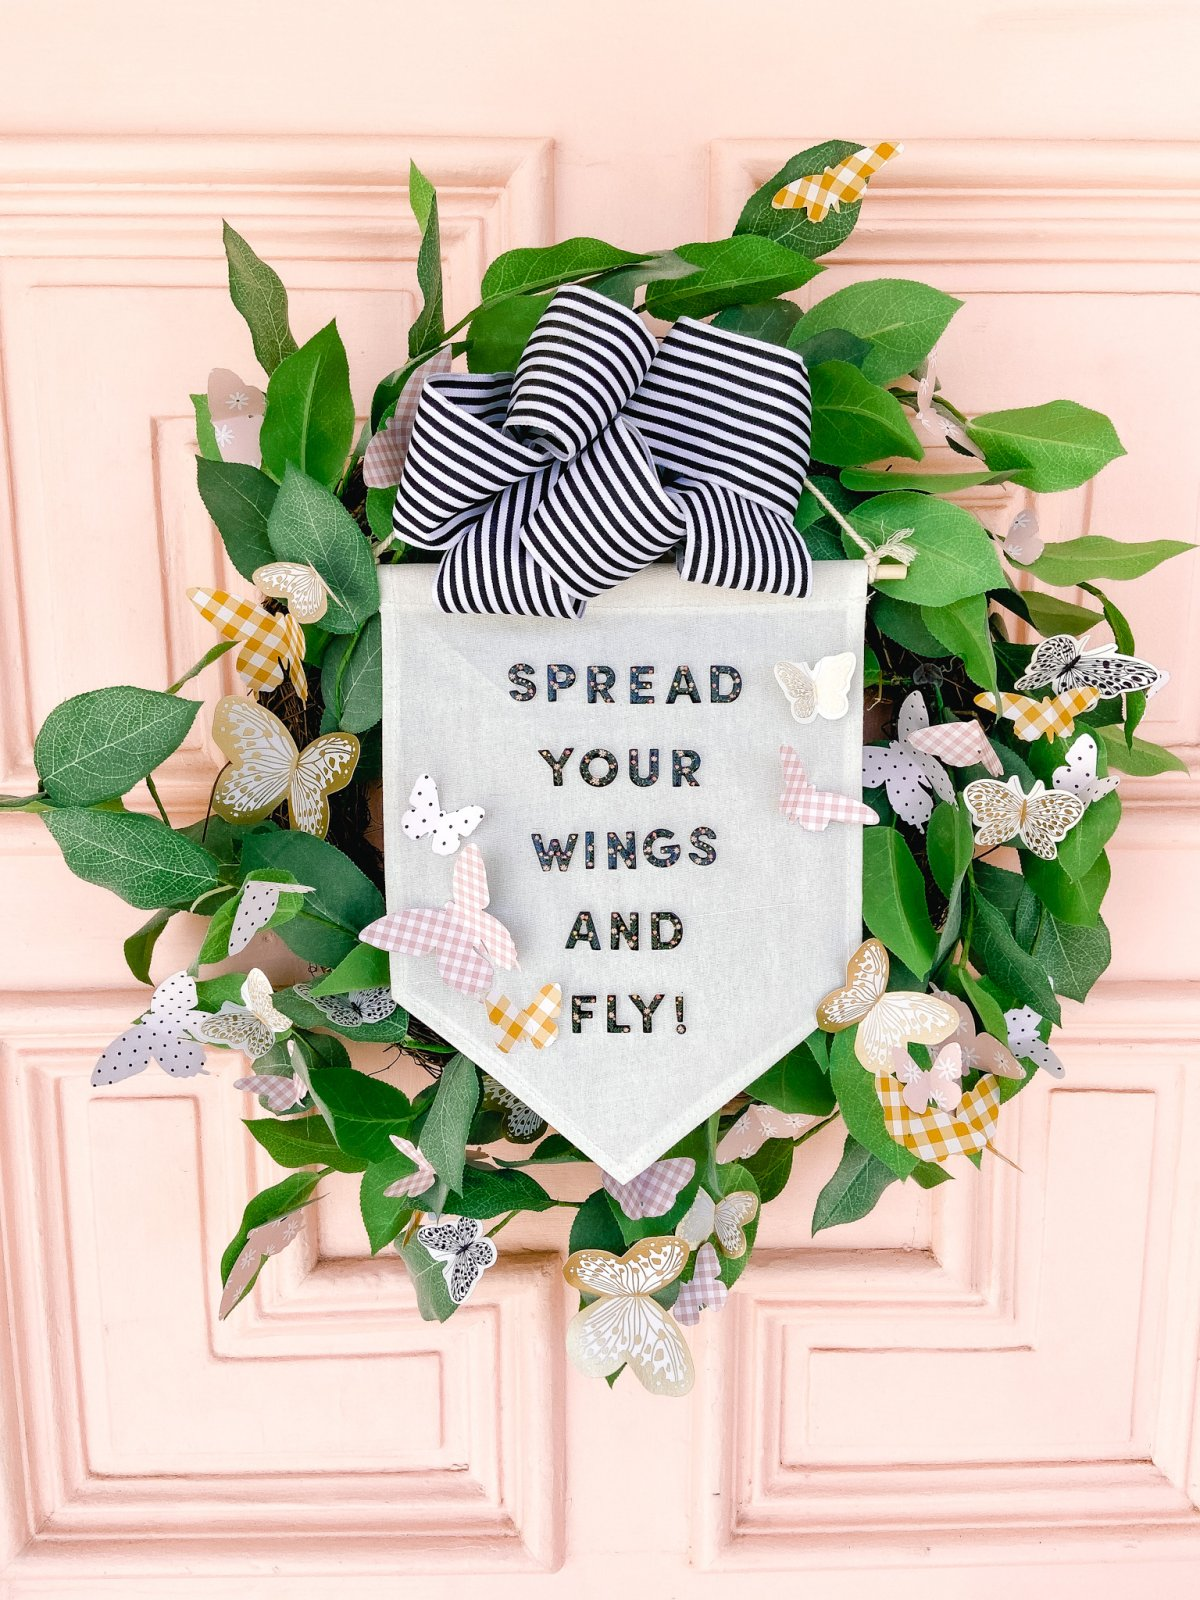 Spring Butterfly Pennant Wreath. Celebrate spring by making this simple wreath with butterflies cut out of cardstock and a big pennant in the middle and a spring saying!